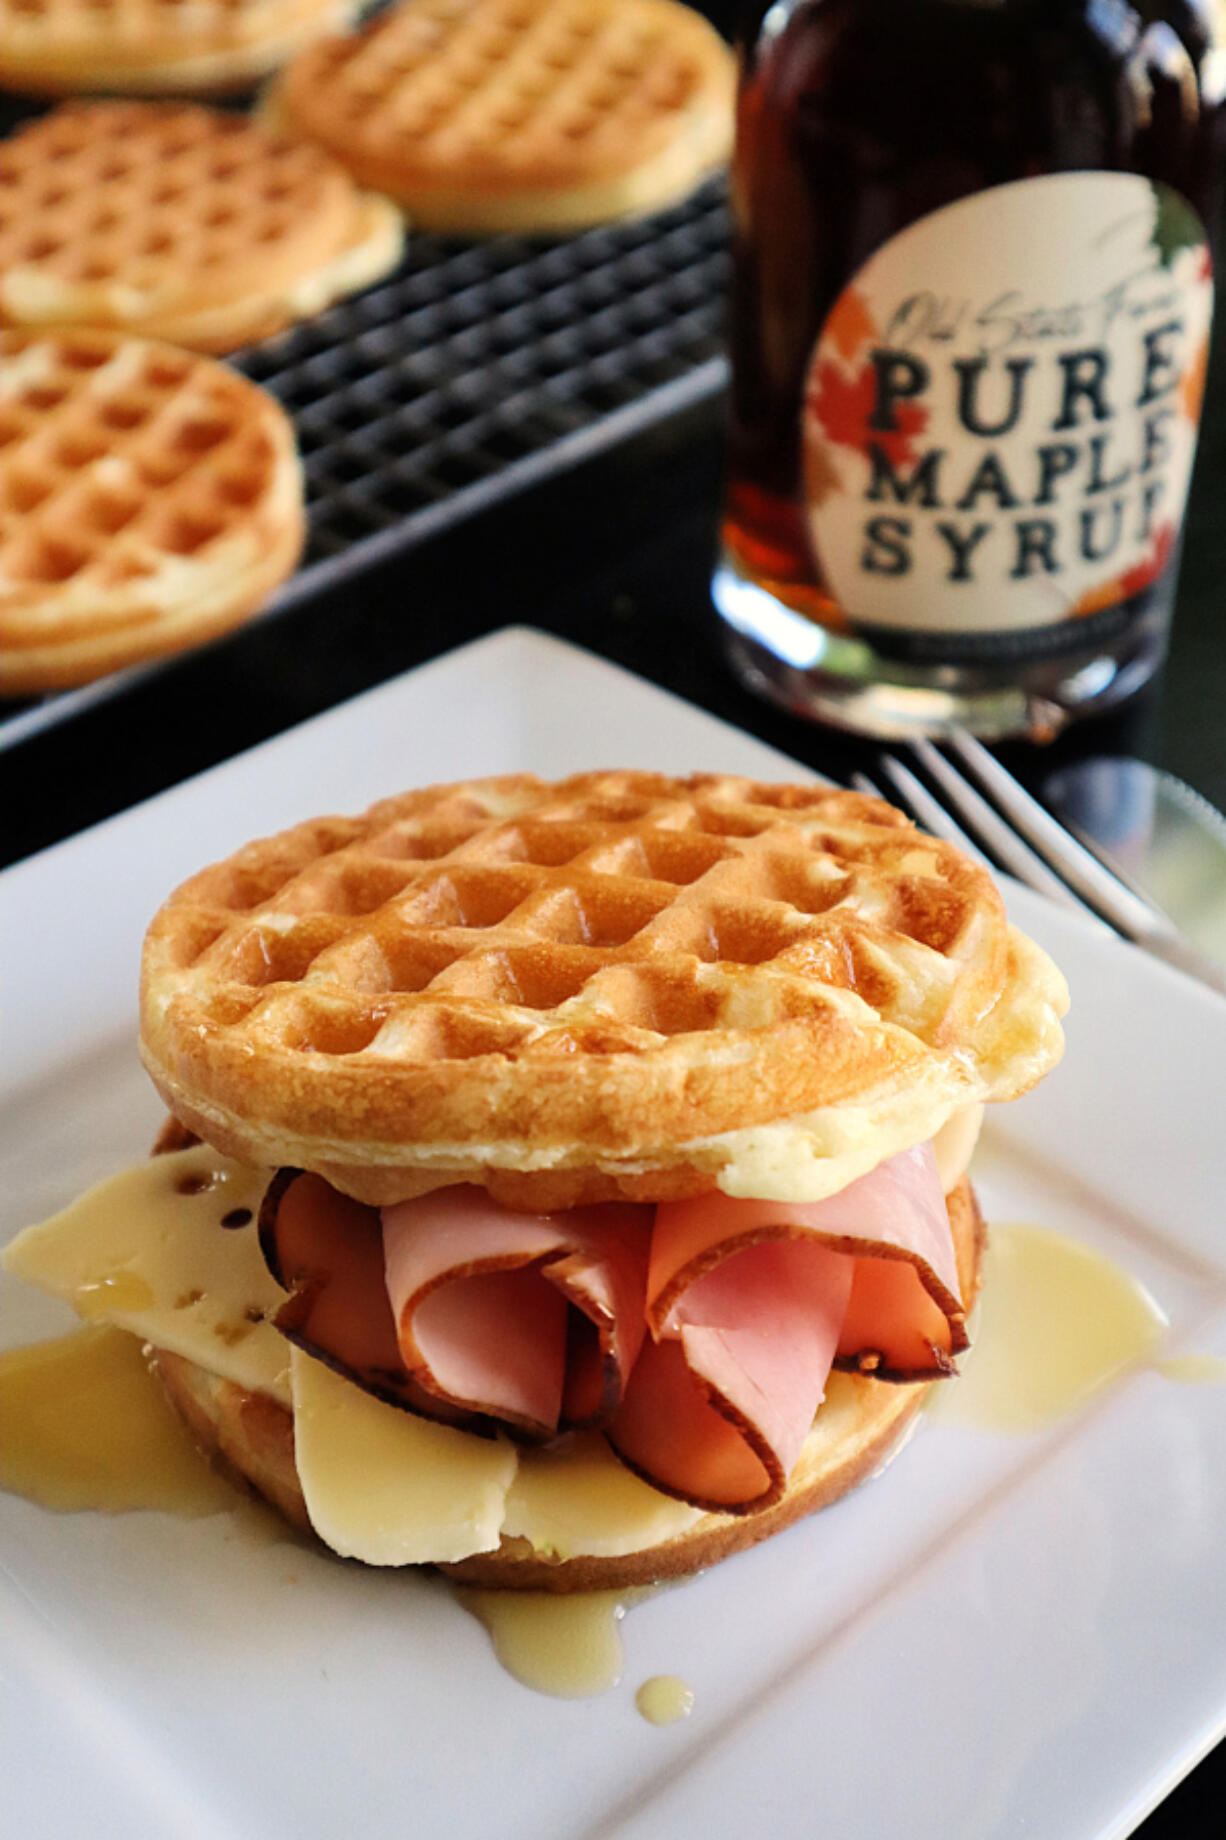 A drizzle of real maple syrup gives a ham and cheese waffle sandwich a sweet finish.